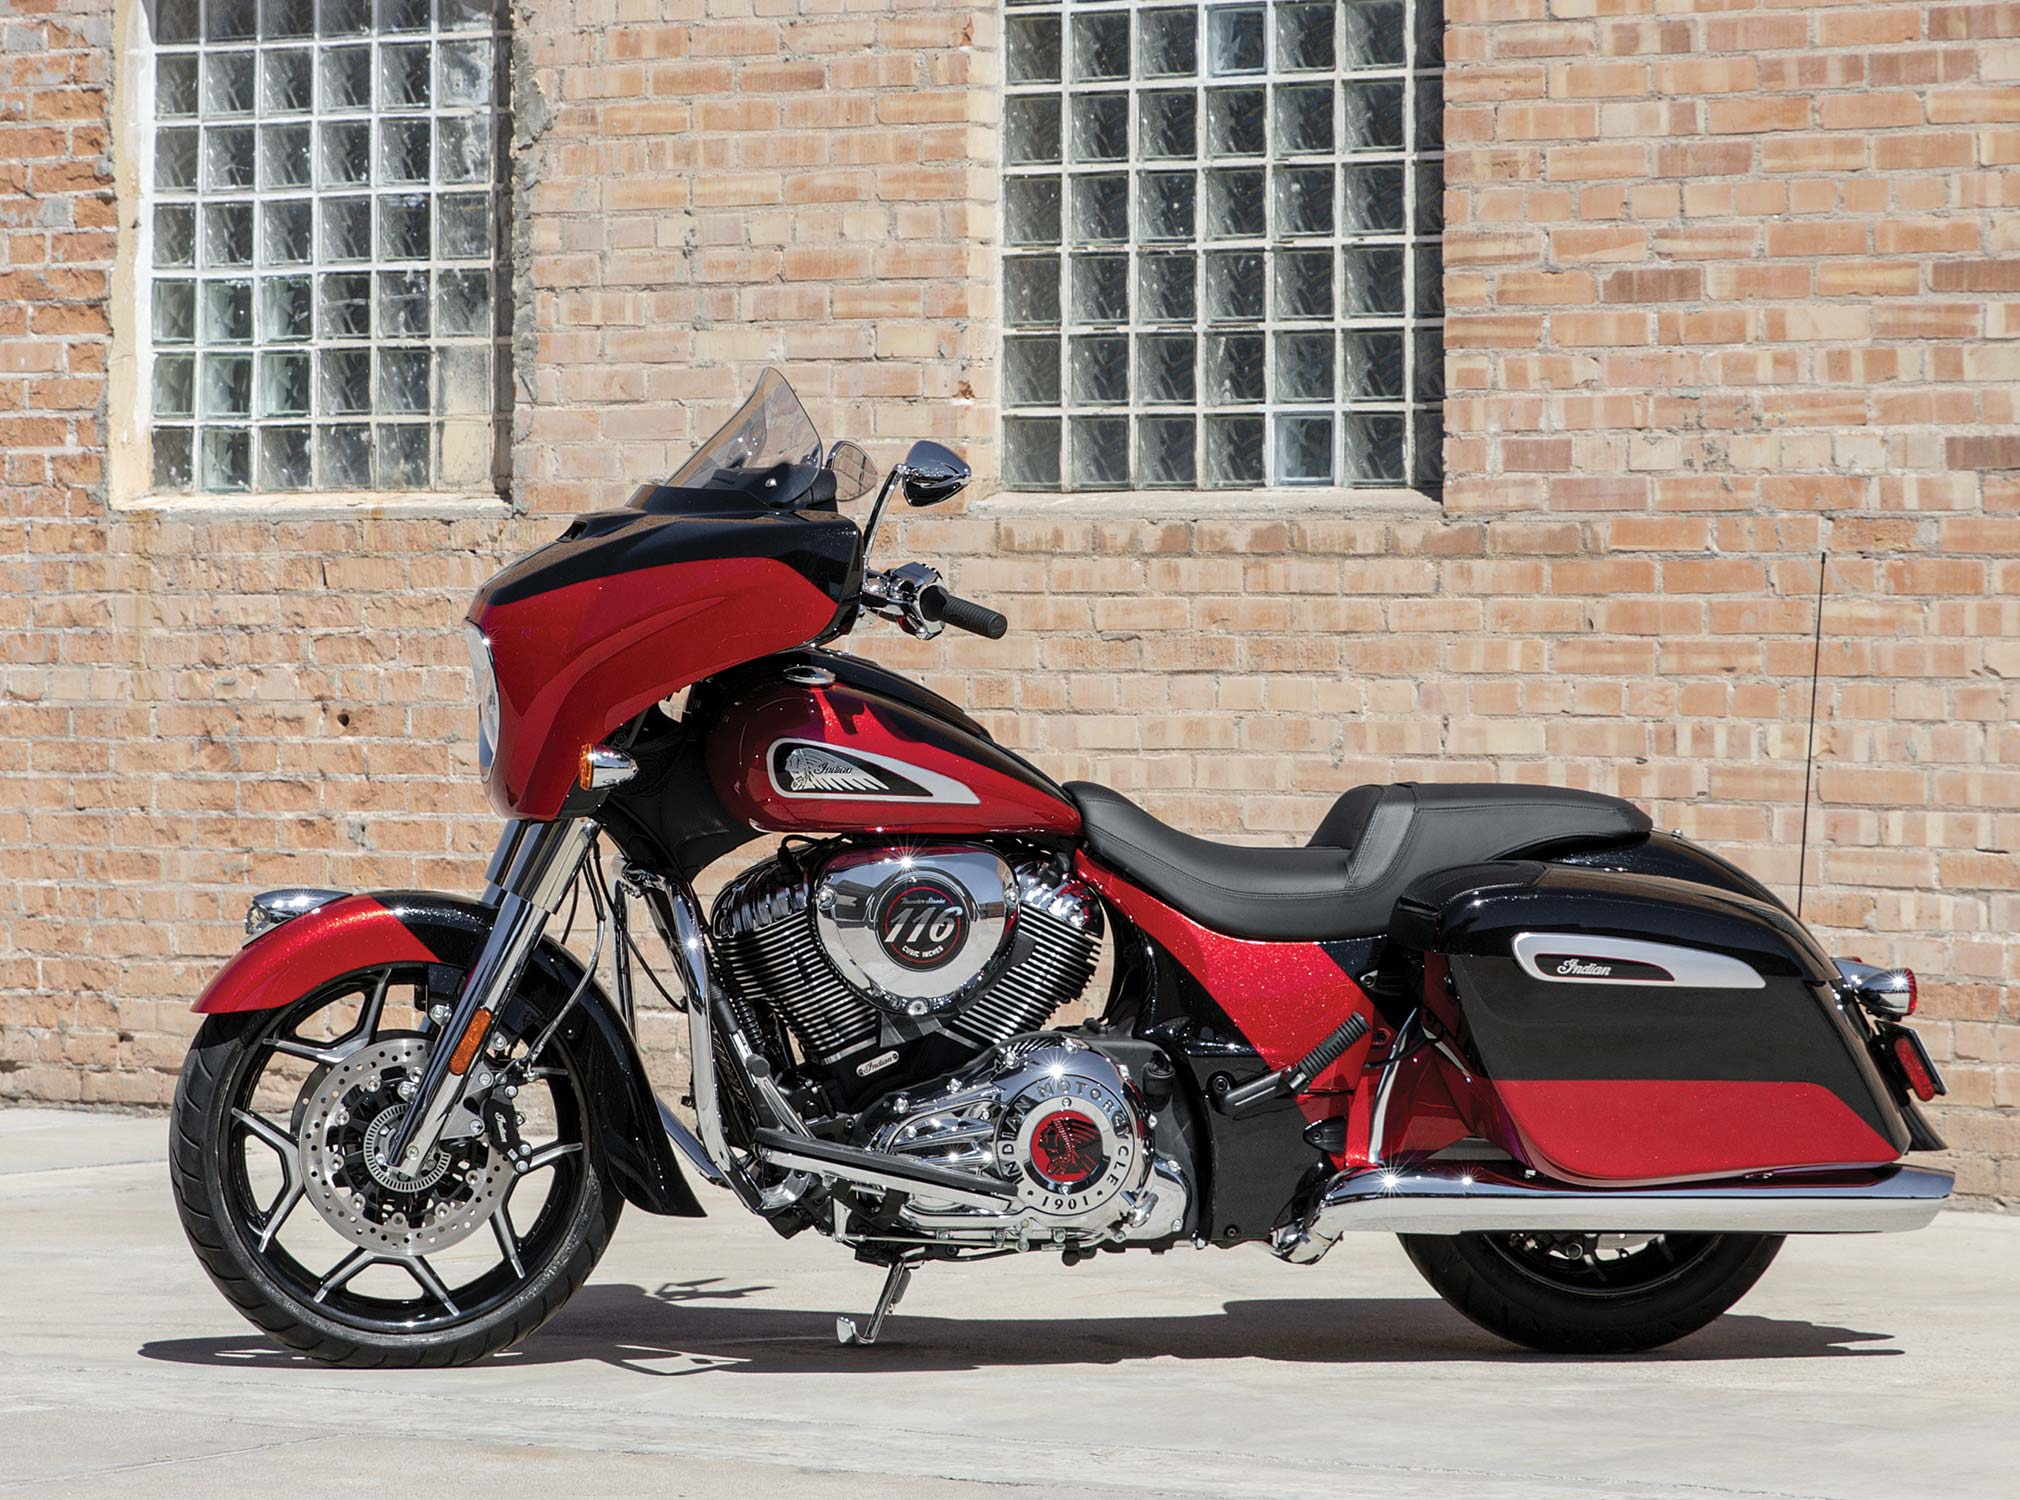 2020 Indian Chieftain Elite Guide • Total Motorcycle